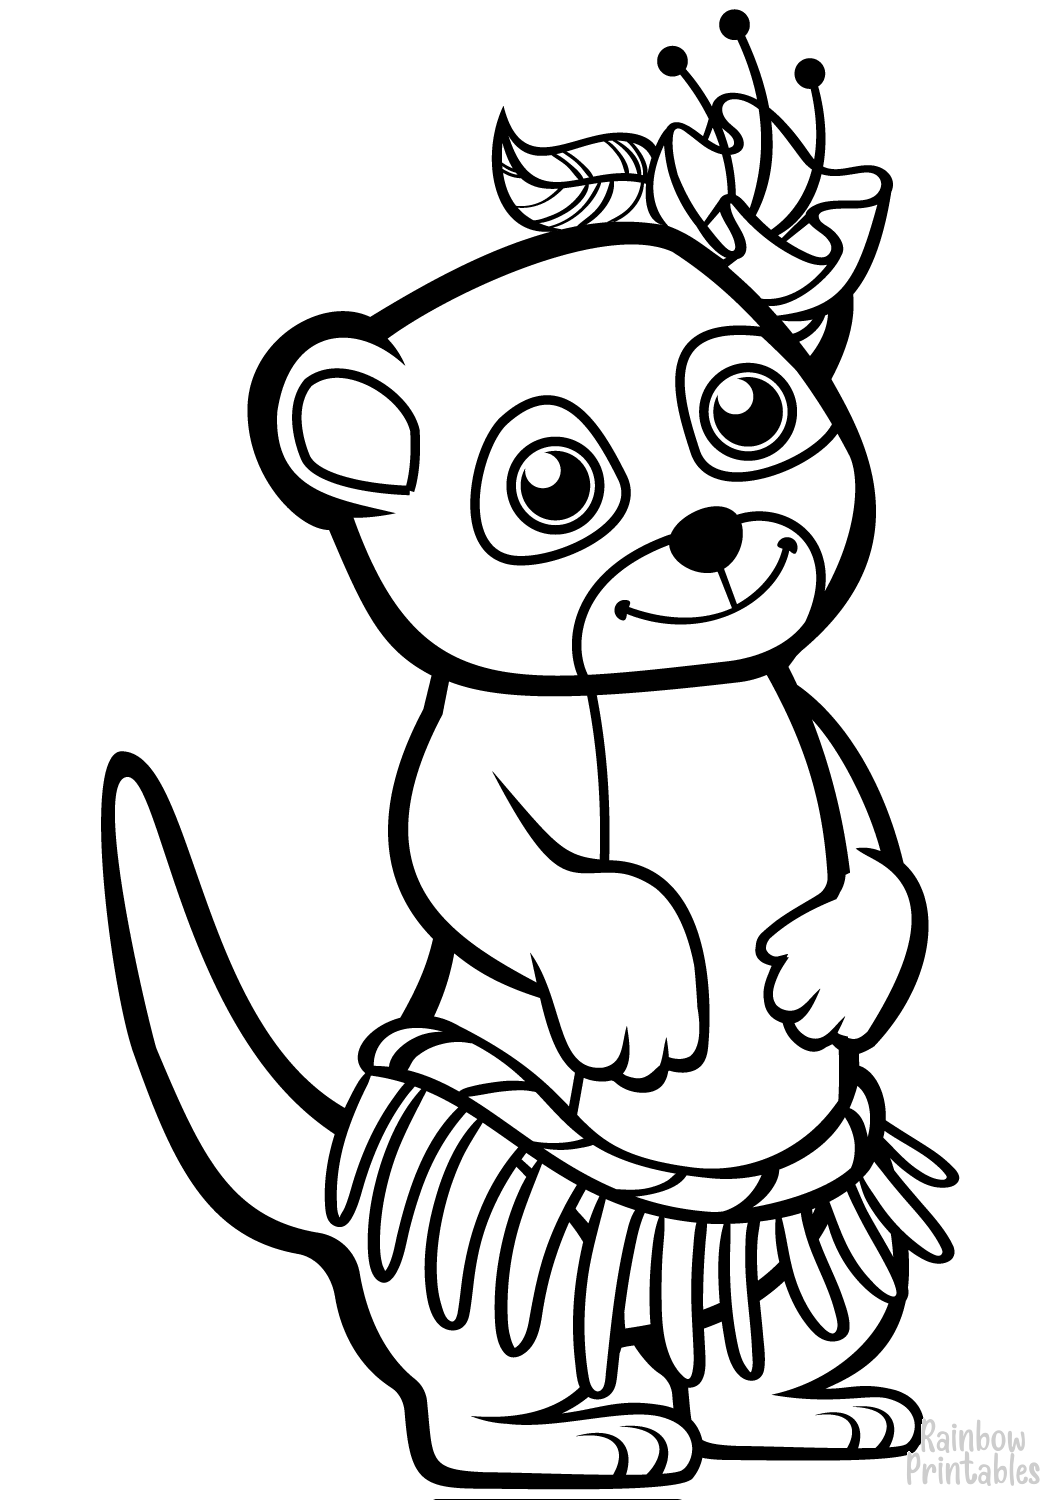 Hawaiian cute animals funny meerkat coloring page for kids